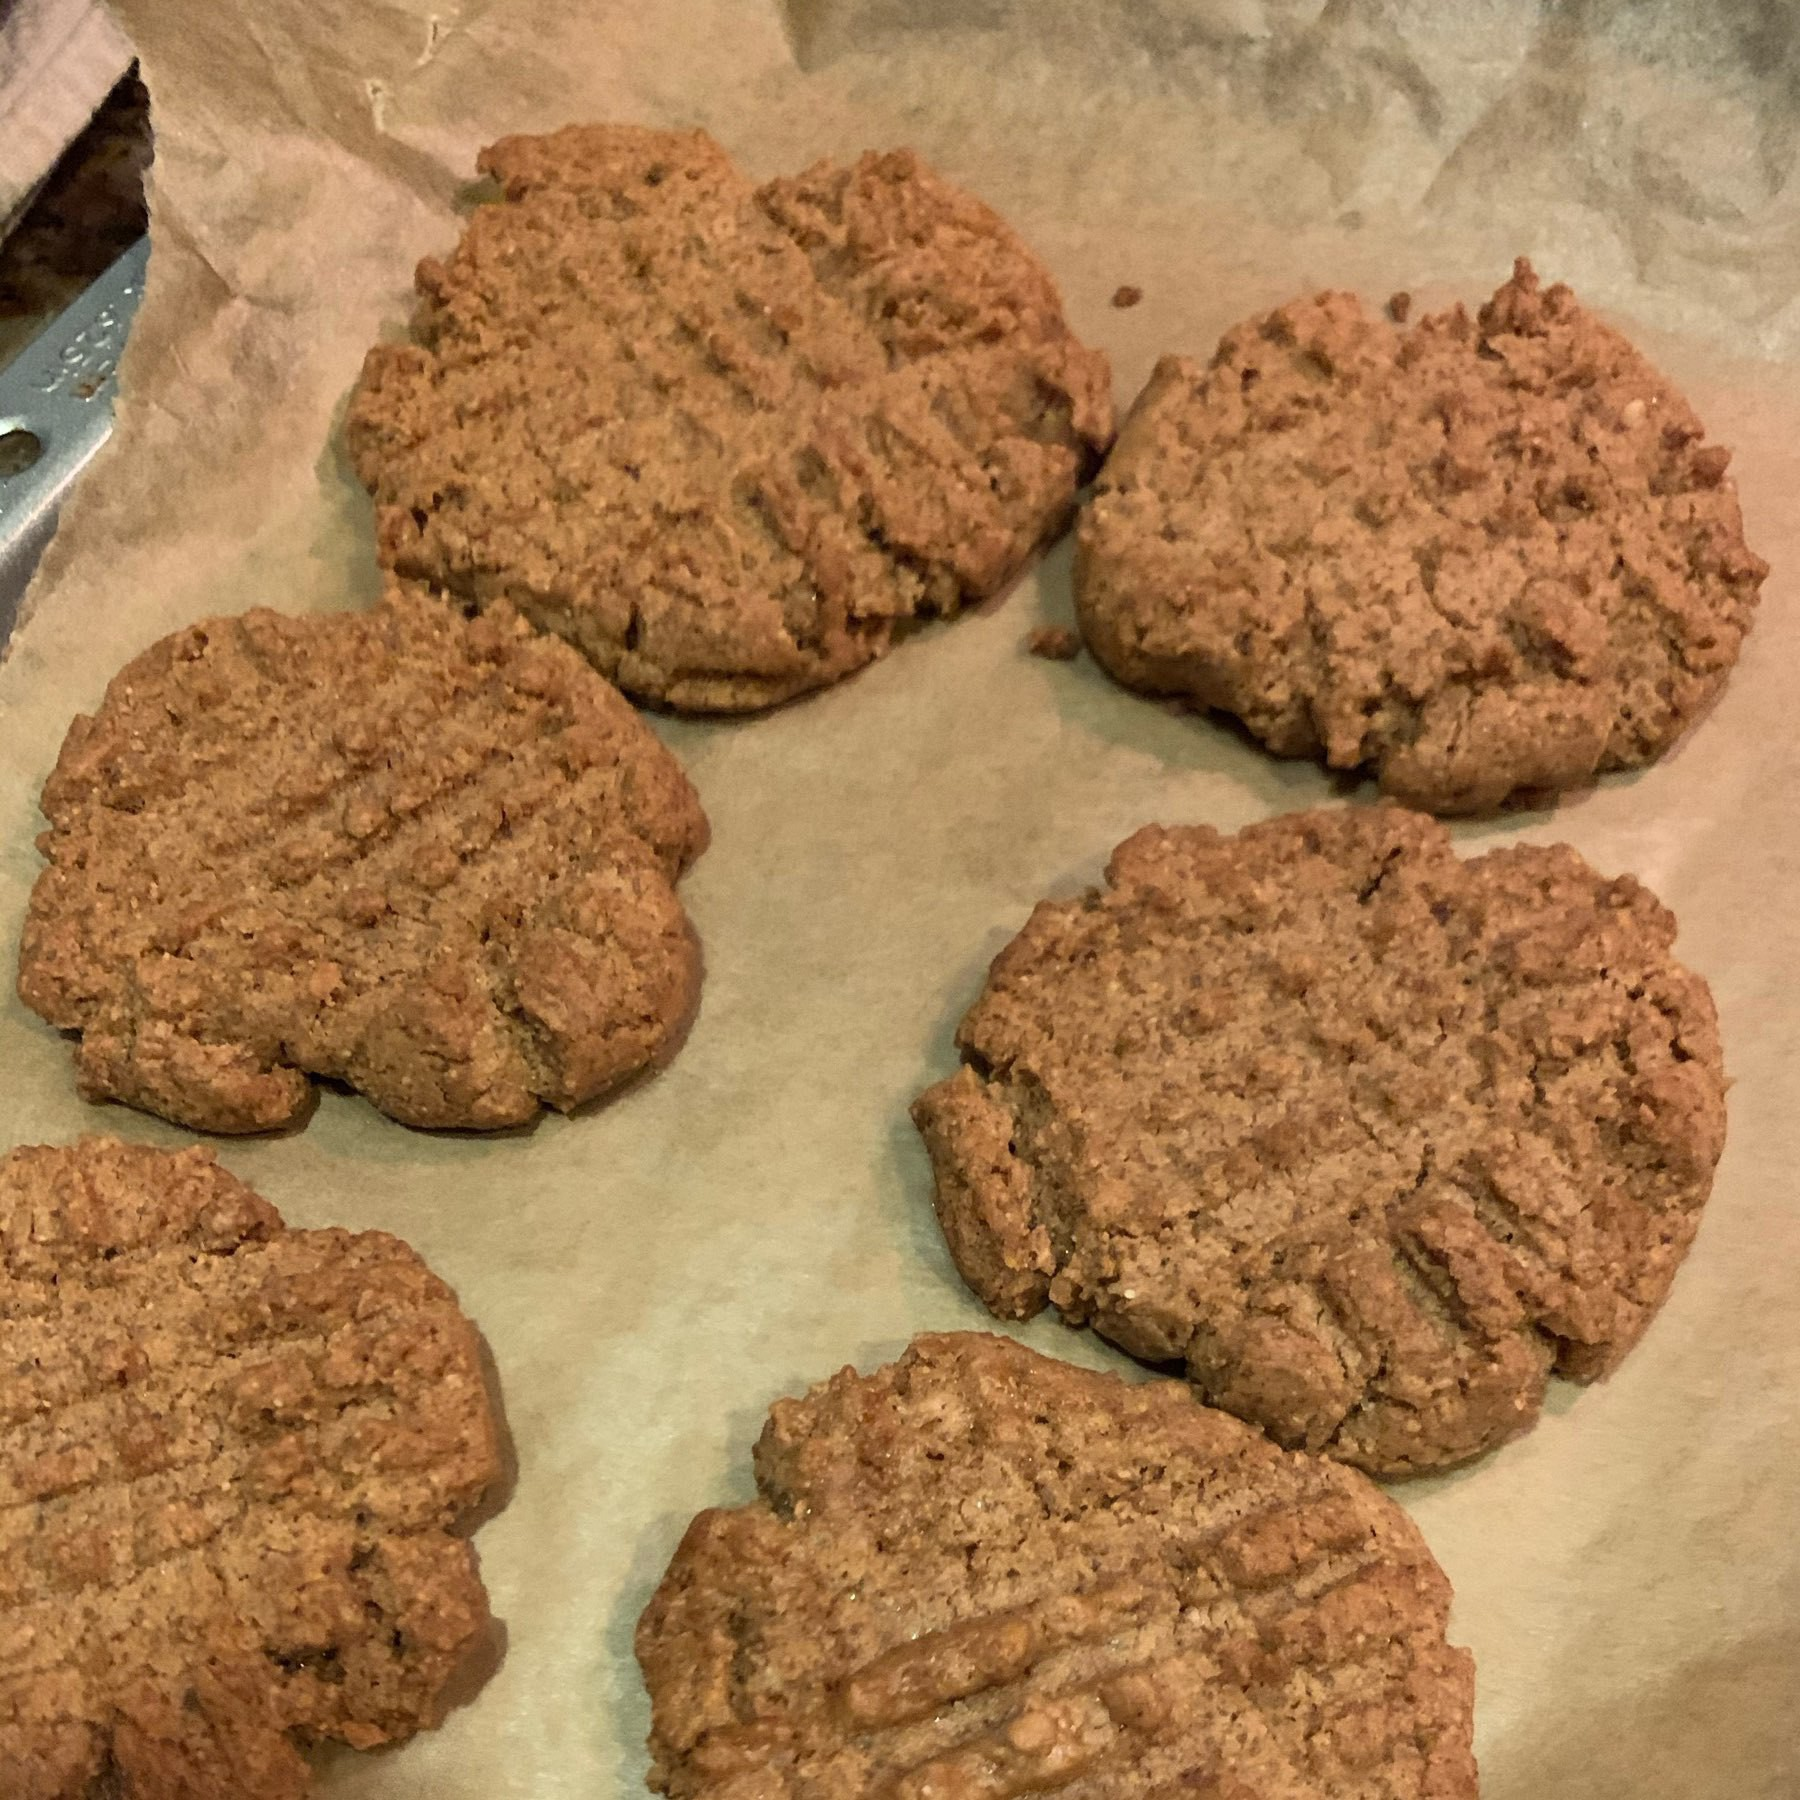 peanut butter cookies cooling on a sheet